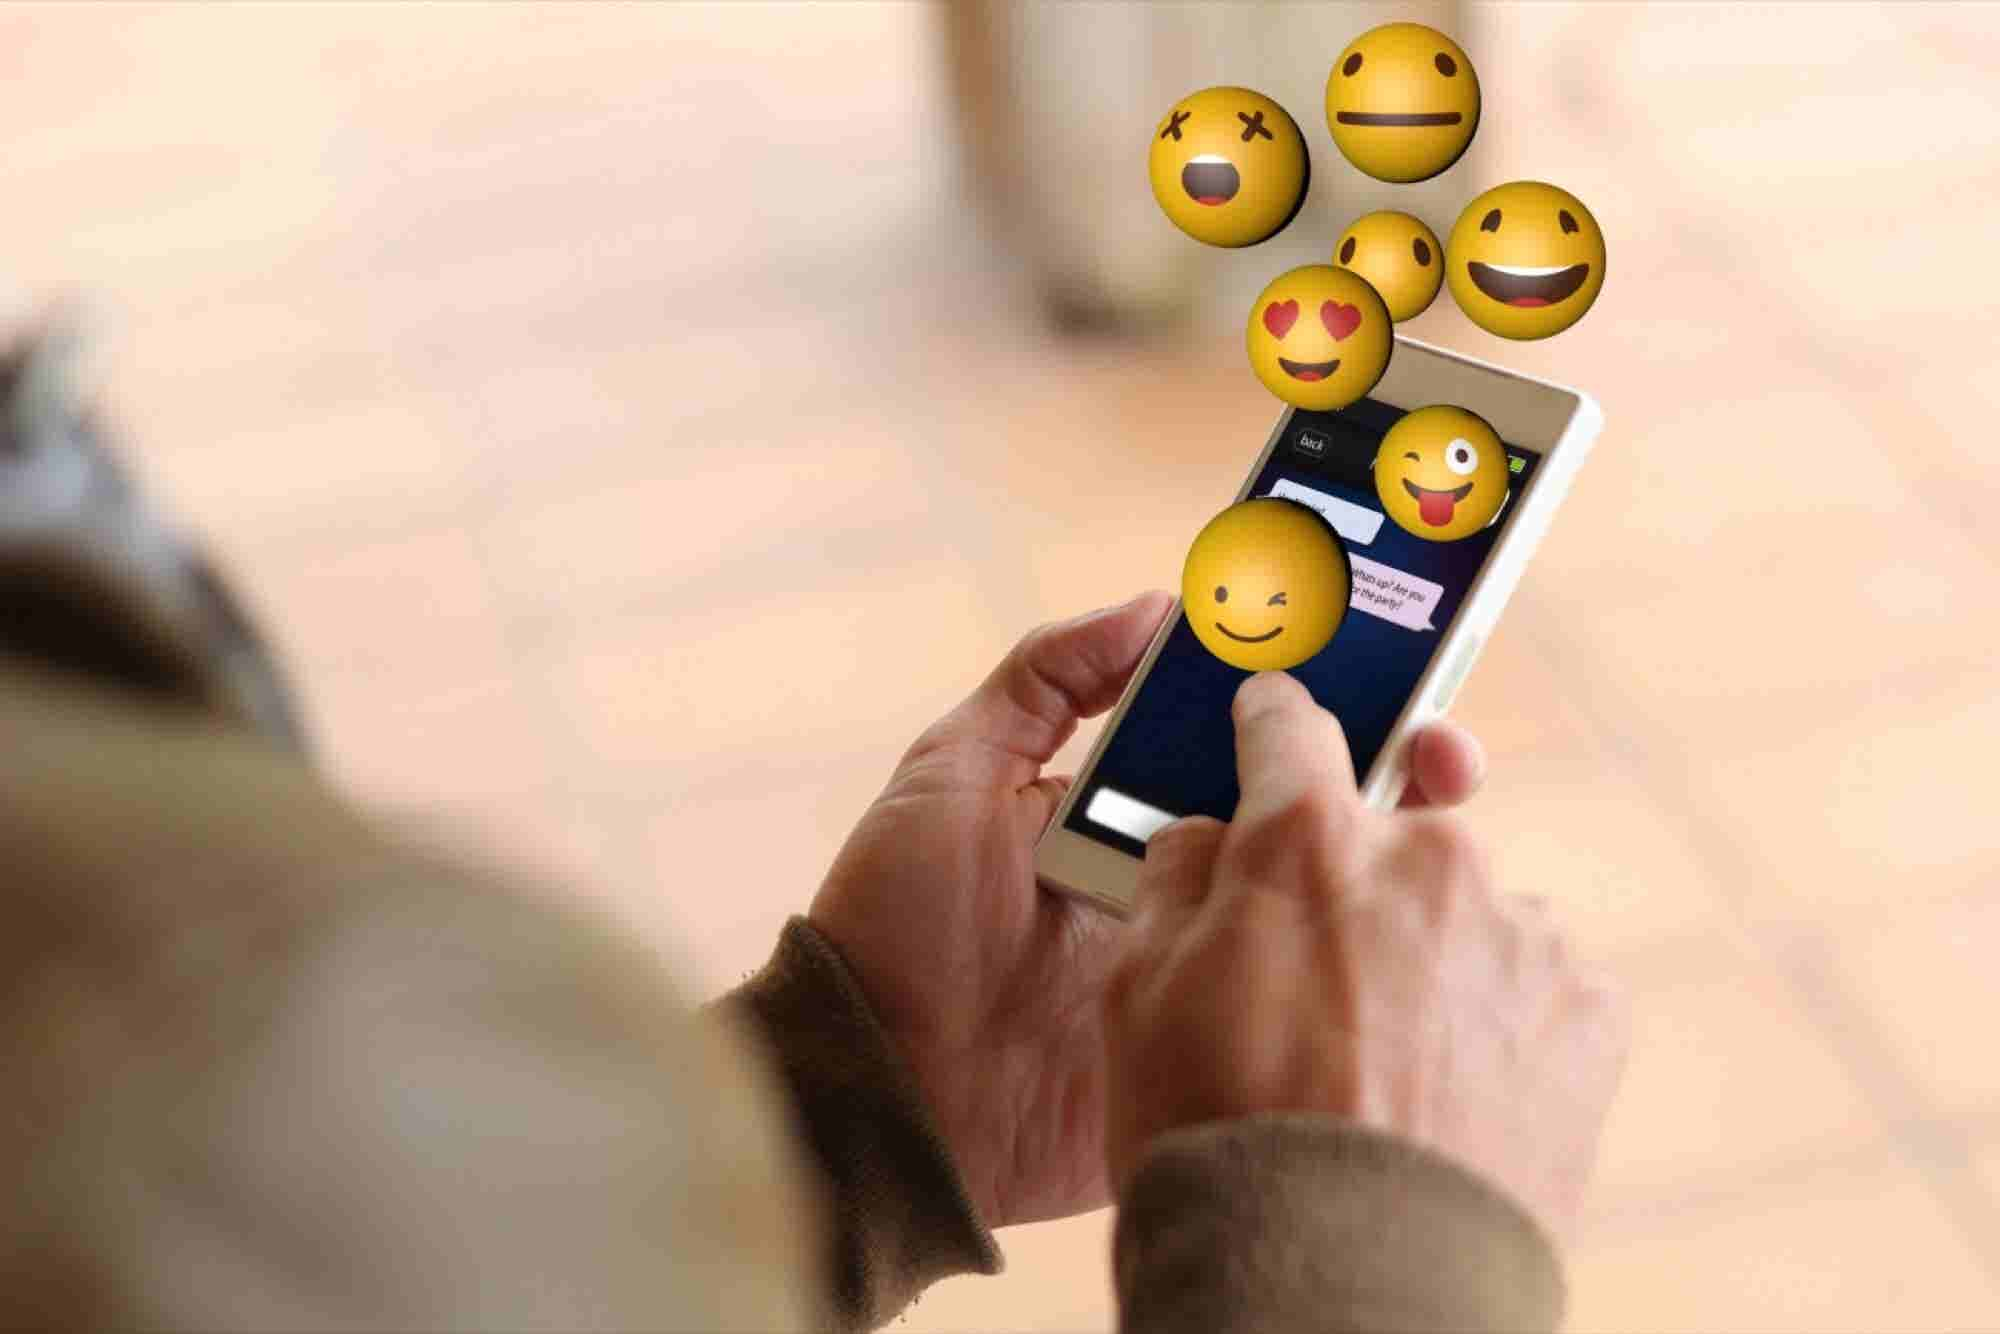 How Emojis Help Build Close-Knit Remote Teams